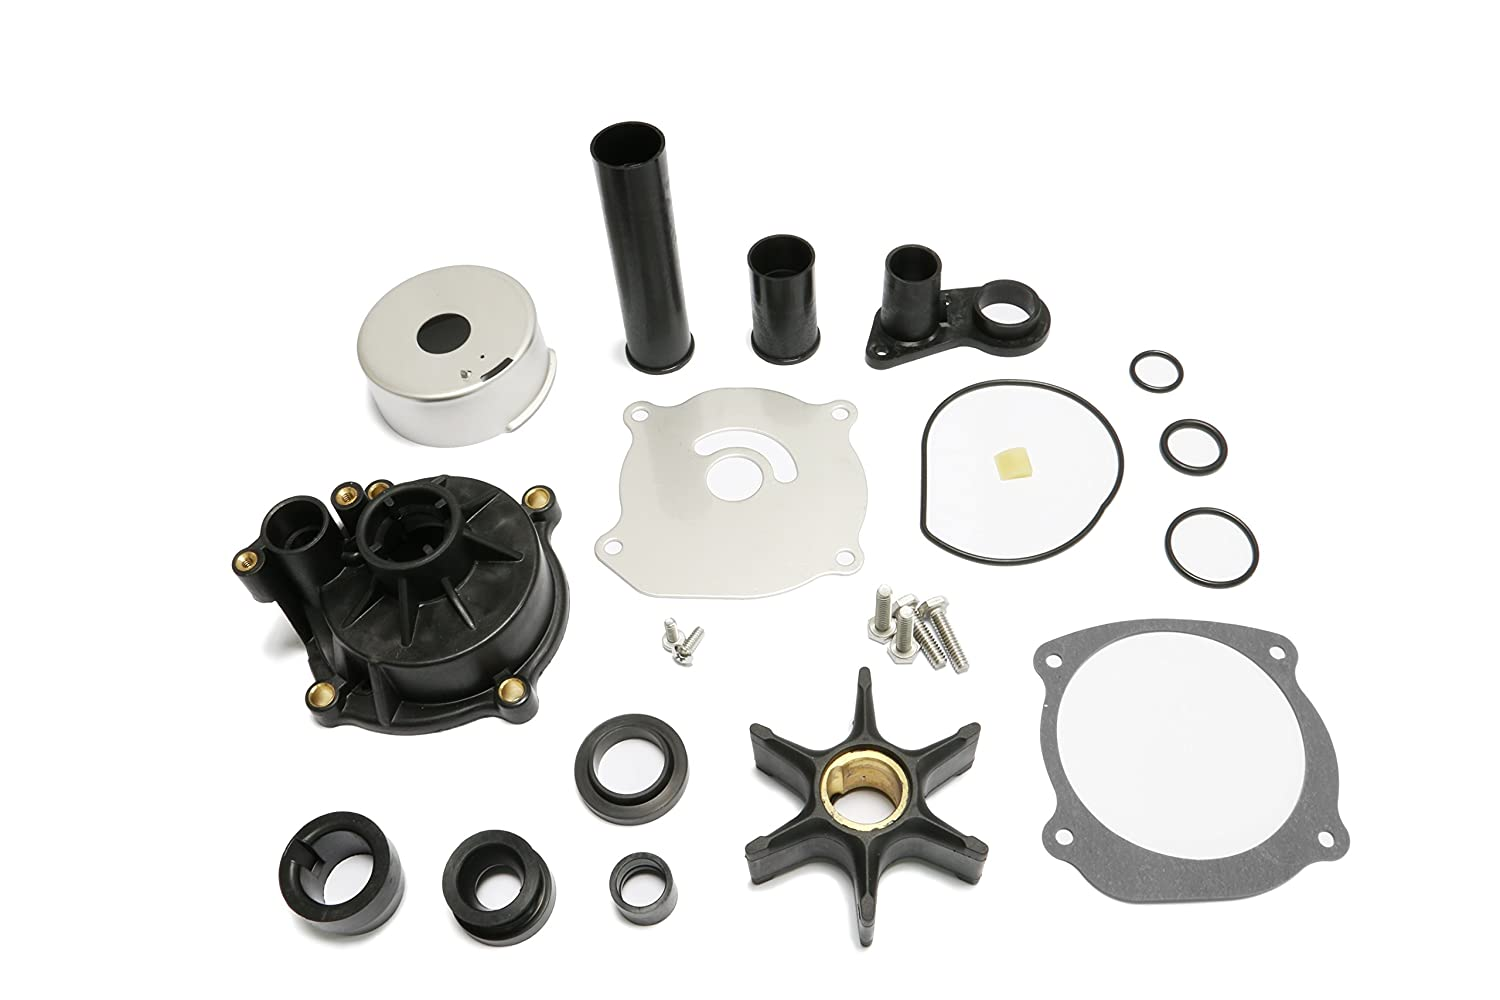 Createshao Outboard Water Pump Kit for Johnson Evinrude Boat Engine 5001595 With Housing 75-250HP